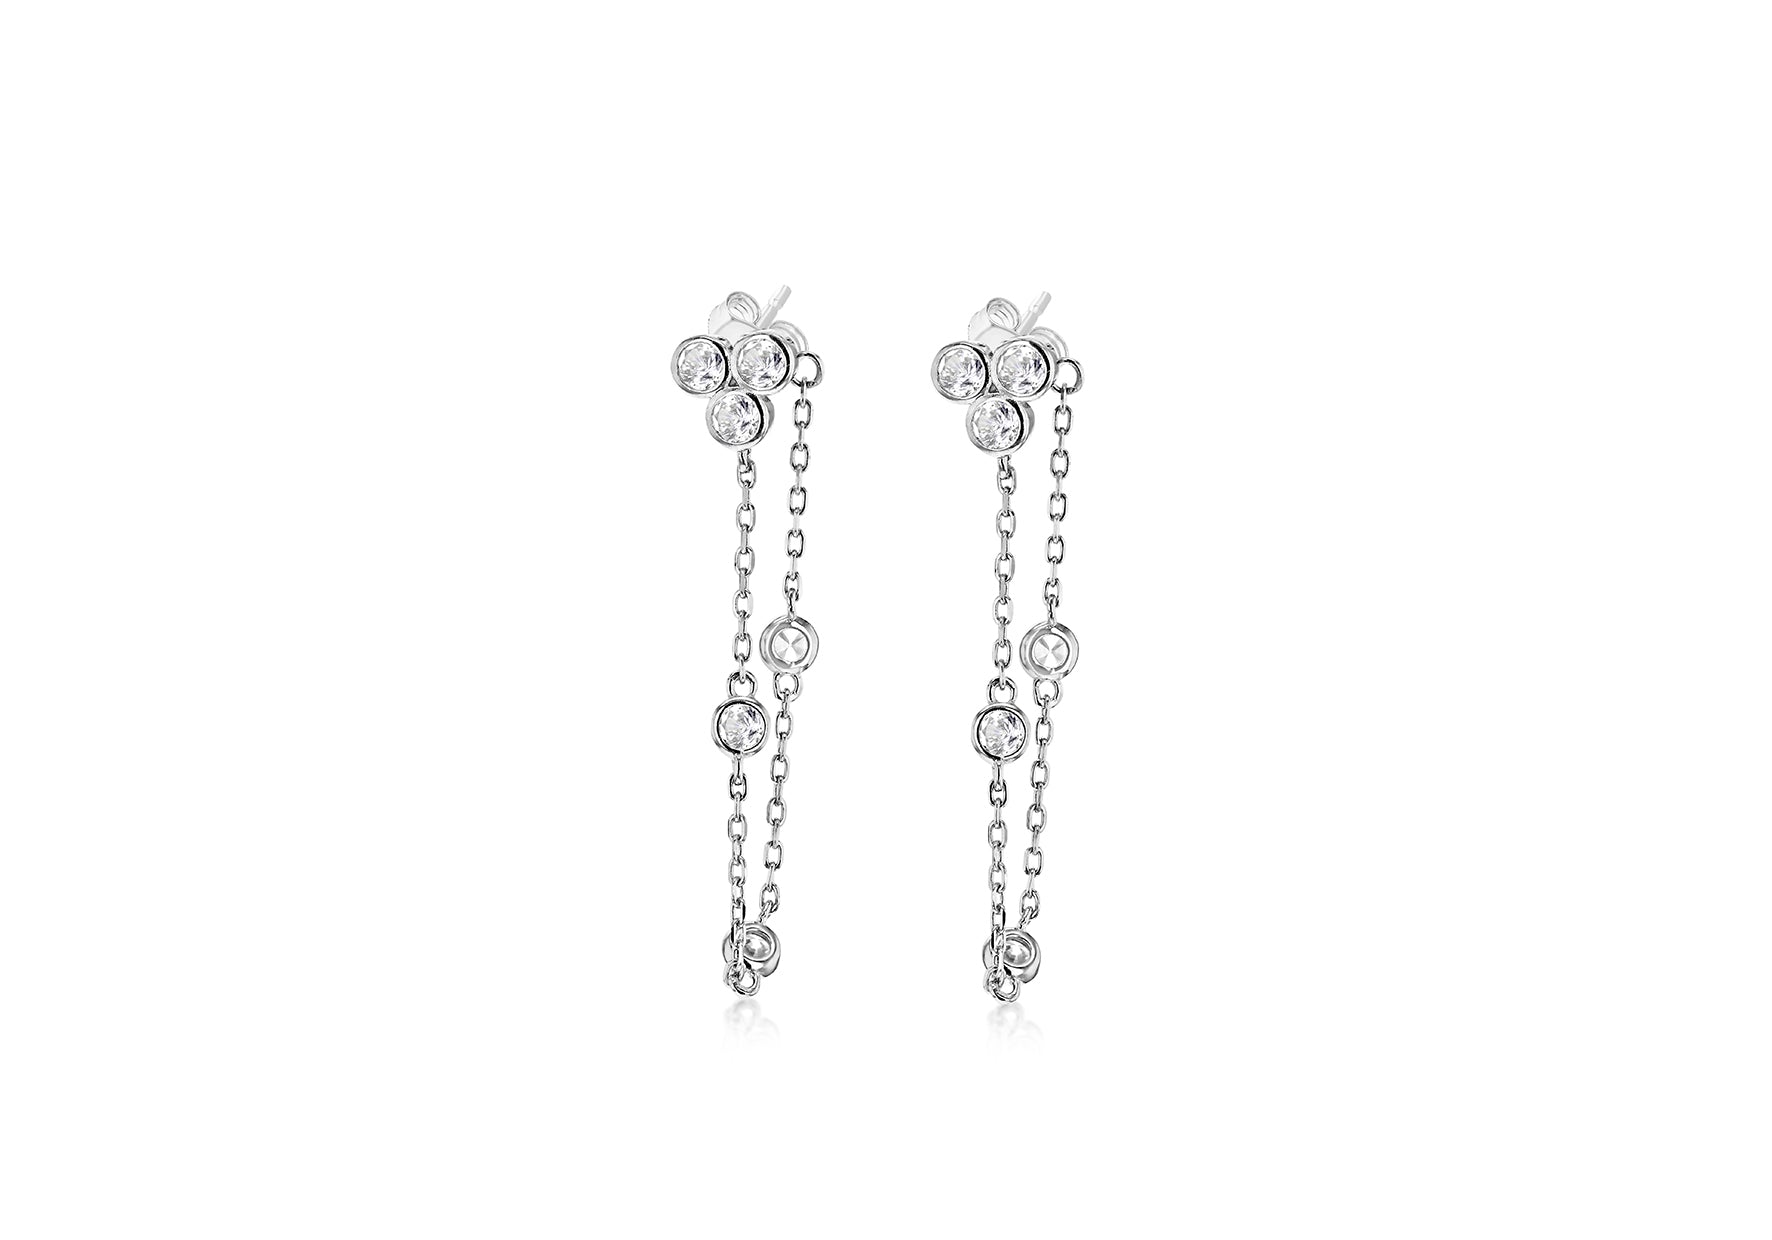 Crystal Flower Earrings with Hanging Crystal Chain